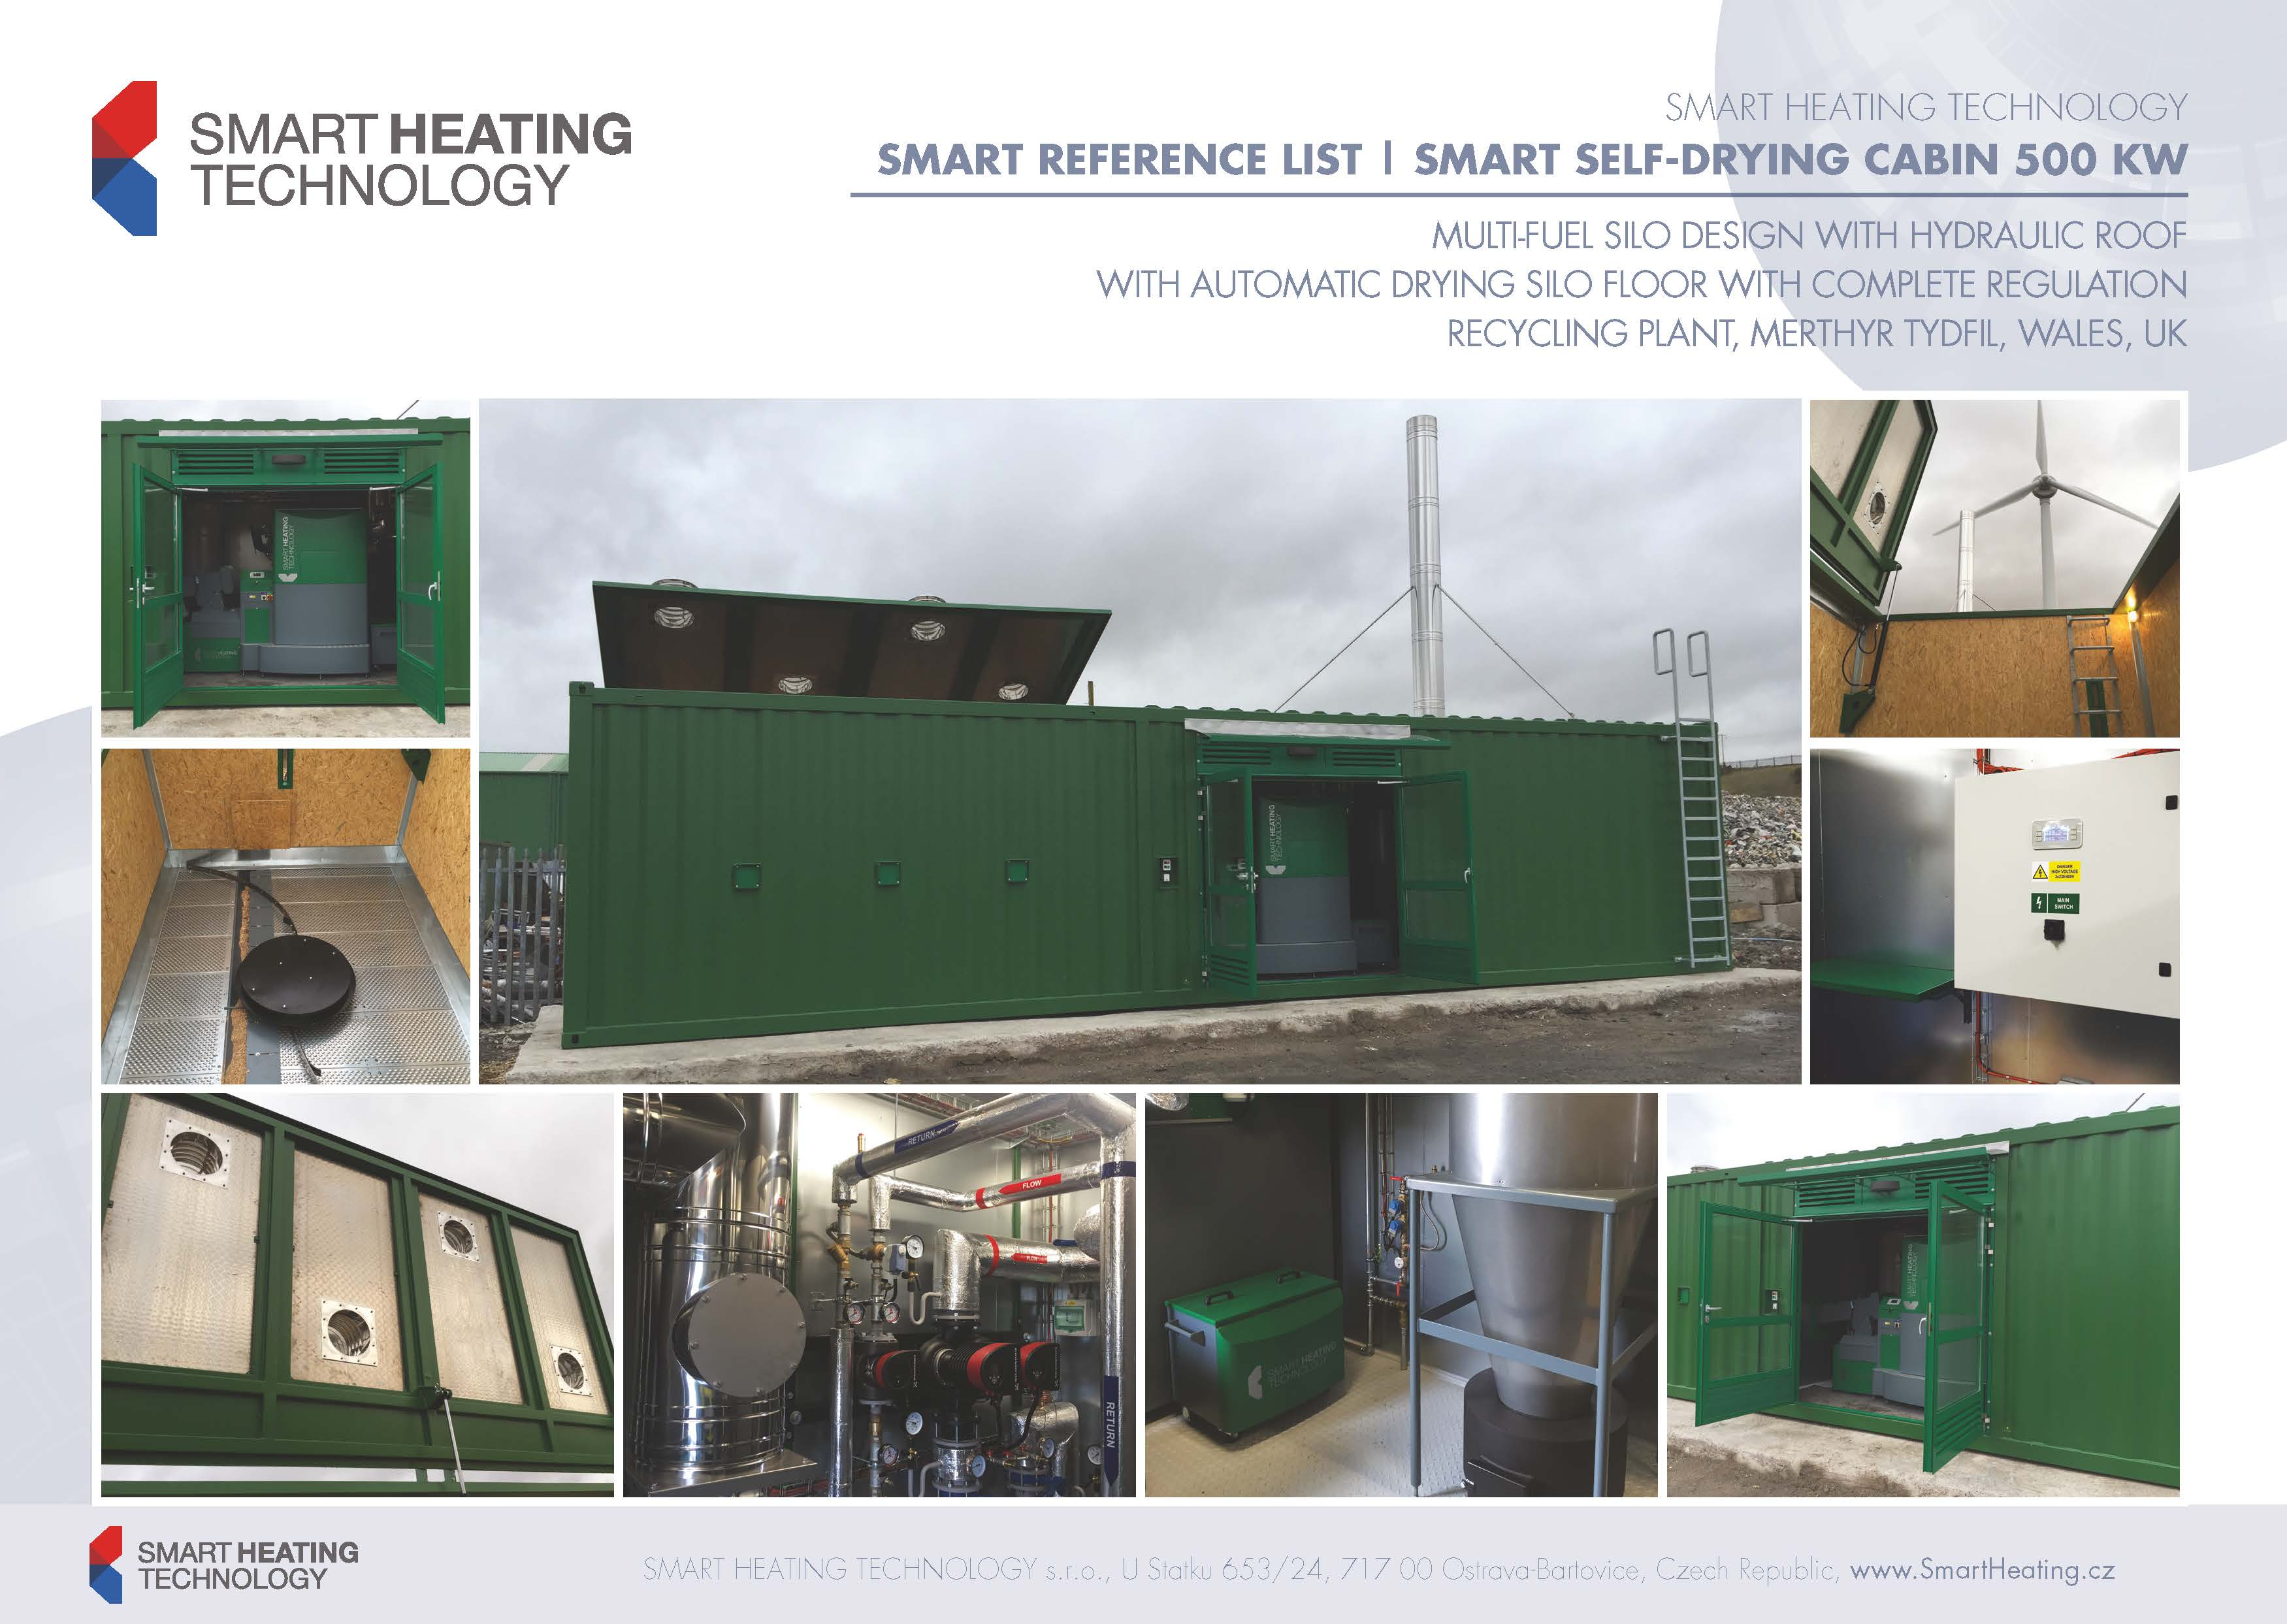 smart-self-drying-cabin-500-kw